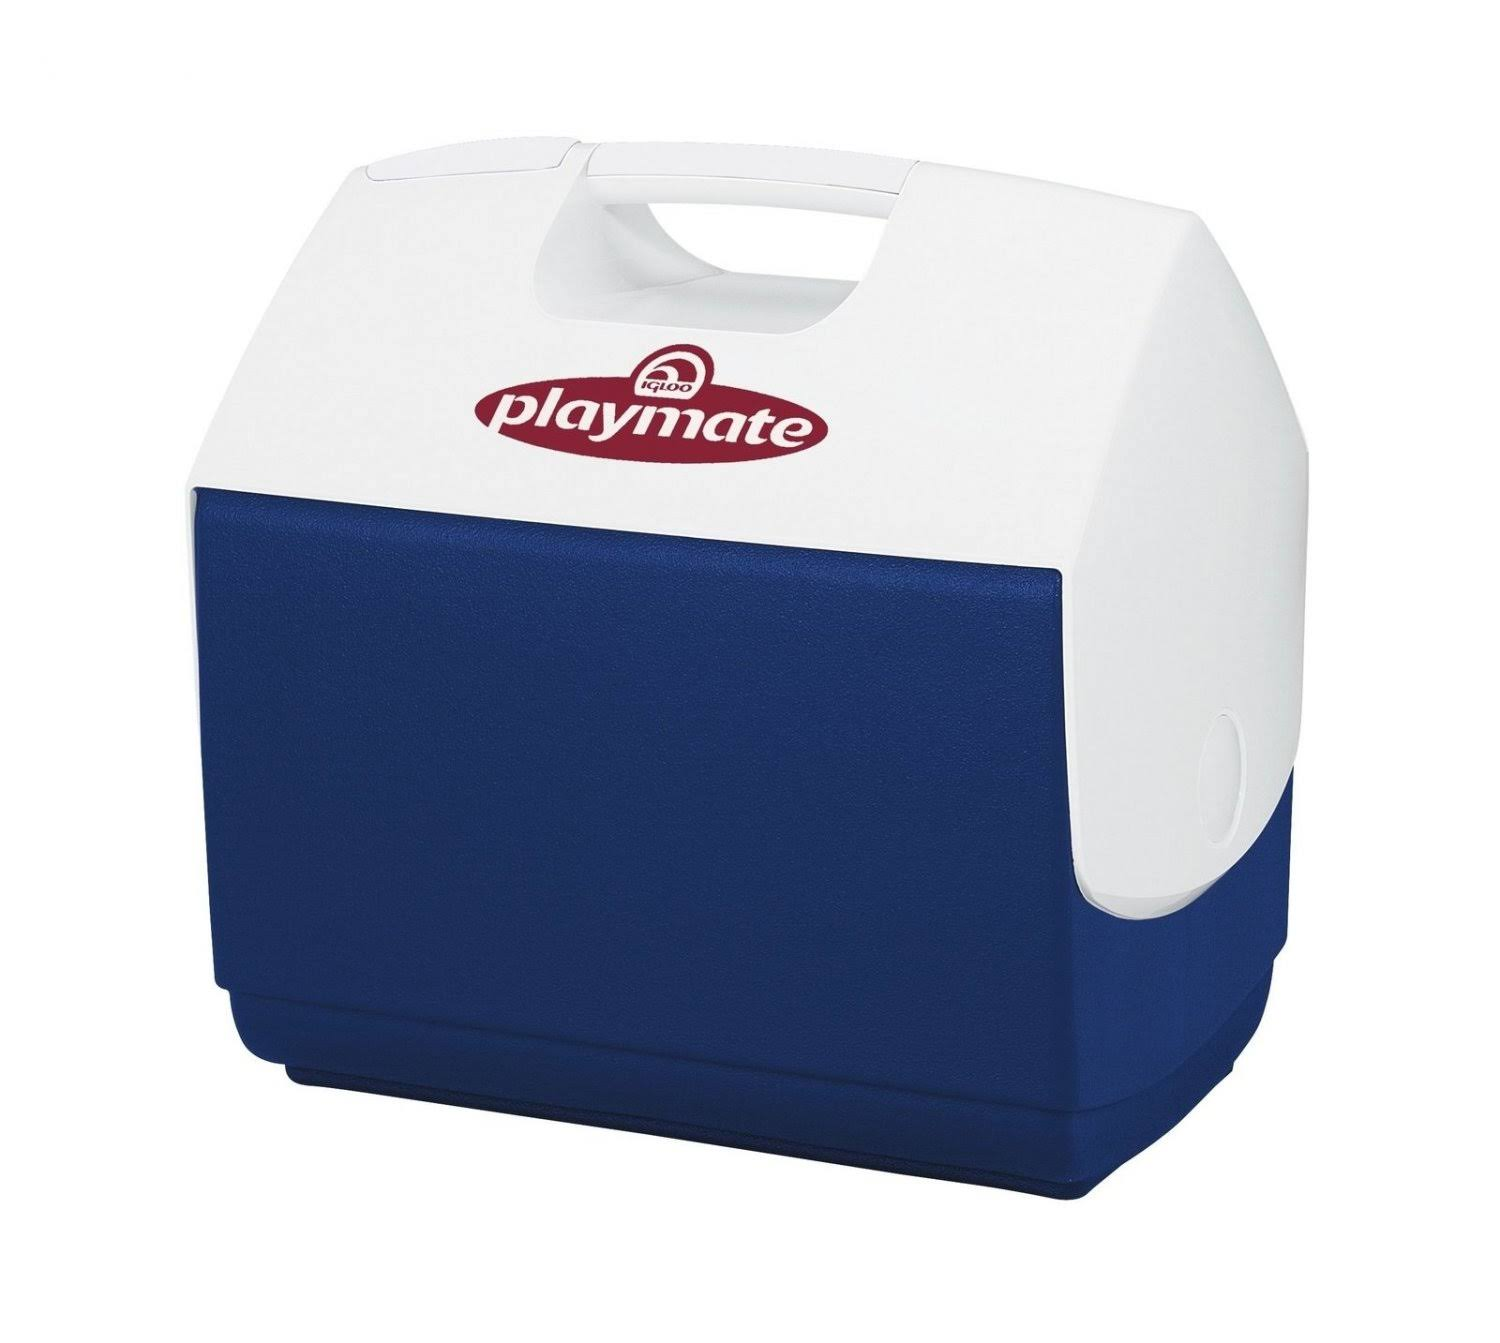 Igloo Playmate Elite Cooler - 16qt, Blue